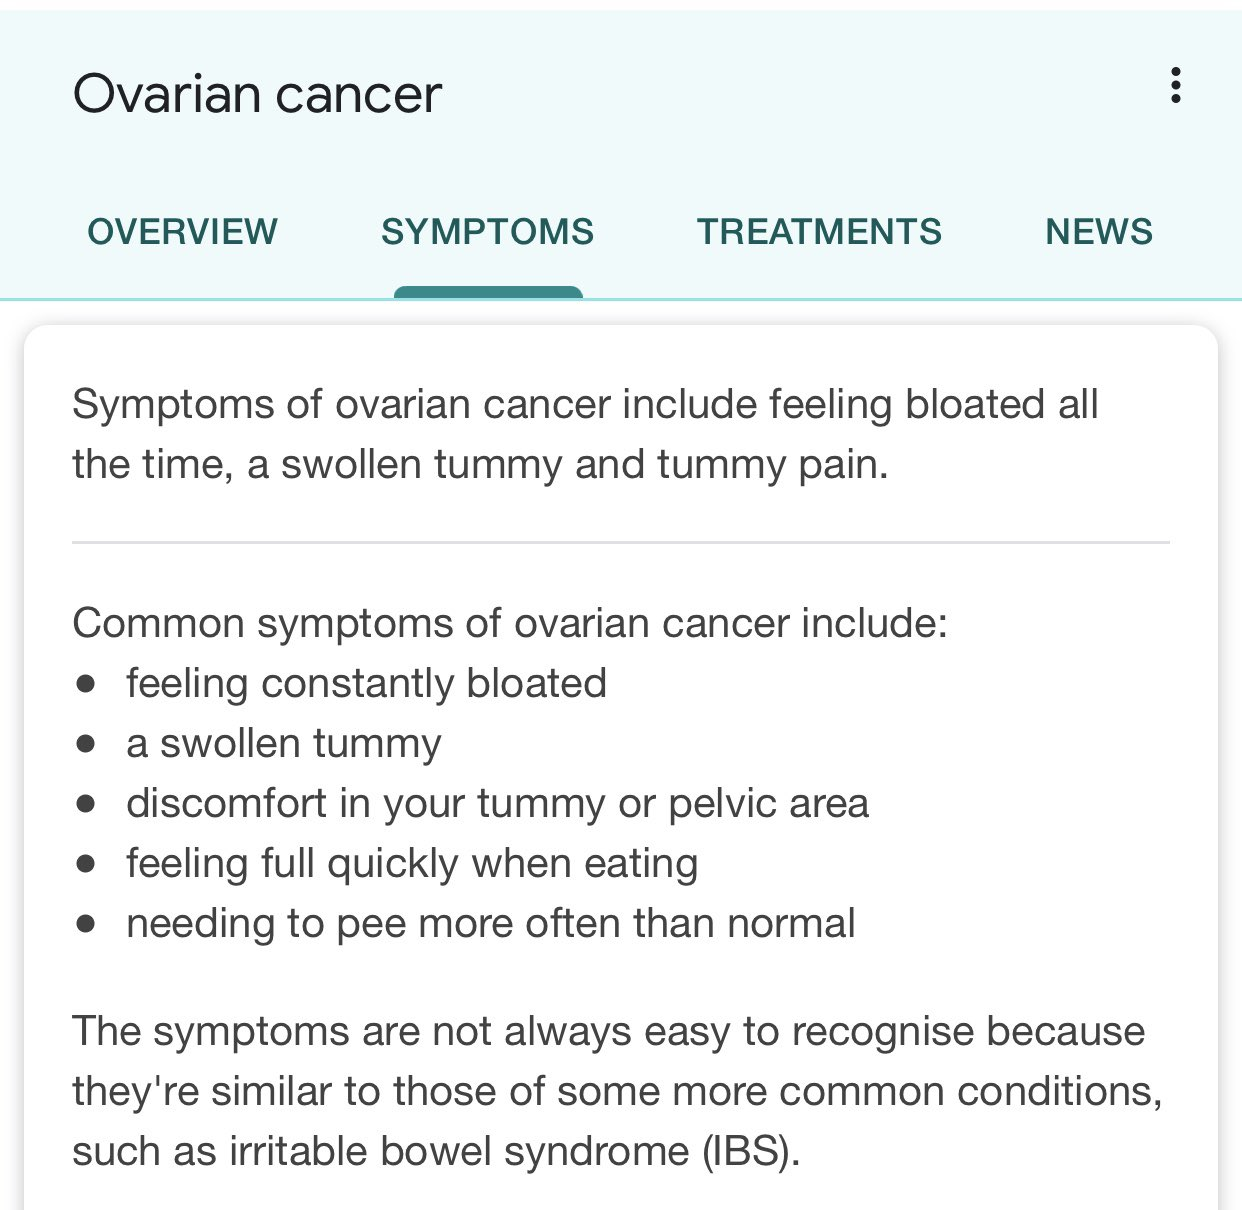 Jean Hatchet On Twitter If You Are Female You Are Not Routinely Screened For Ovarian Cancer I Didn T Understand The Symptoms And Neither Did My Mate She S Not Here Any More The